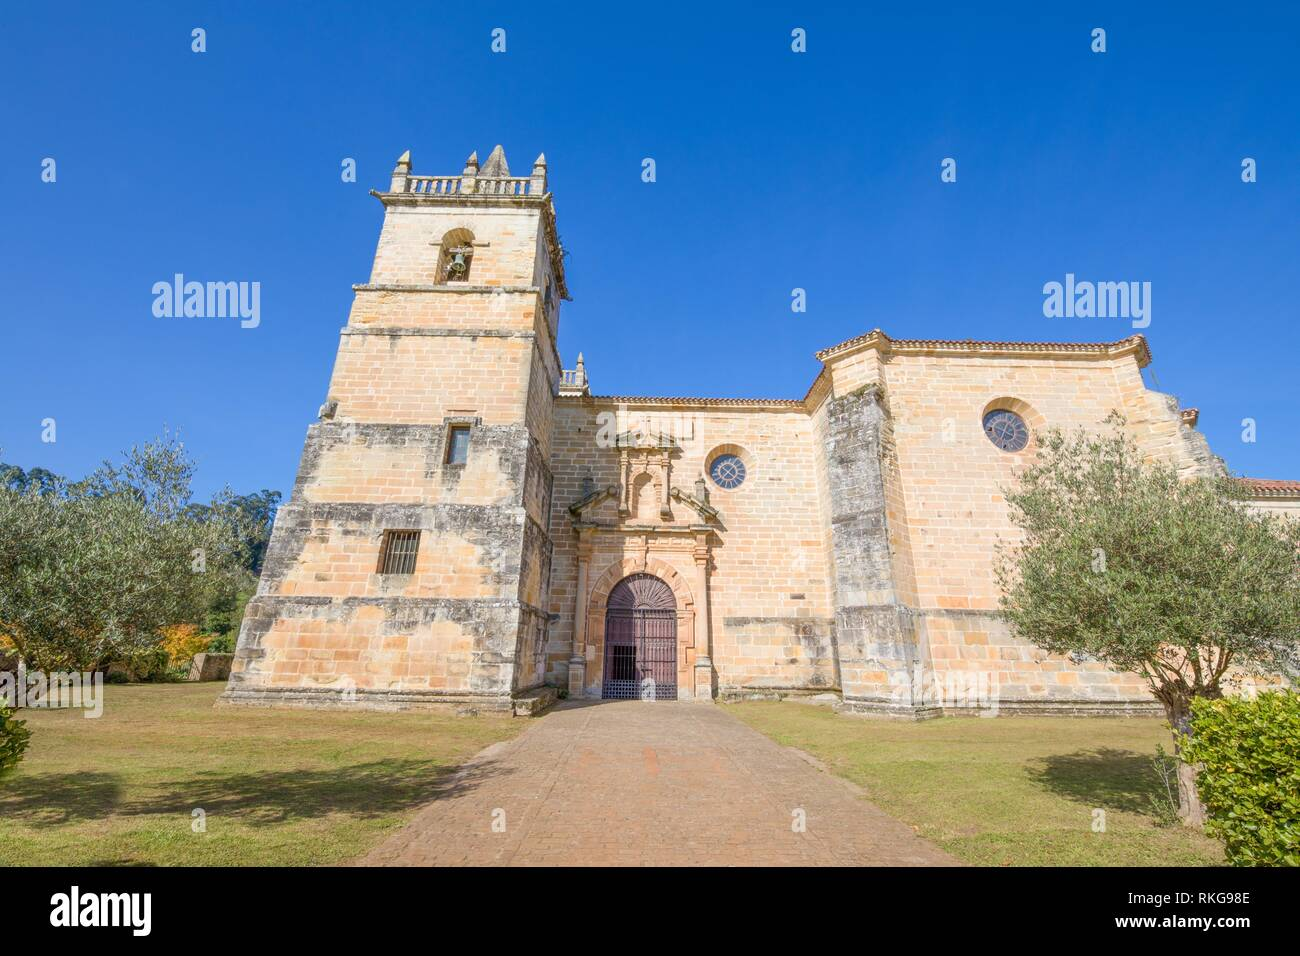 church of Saint Martin de Tours, colonial baroque style monument from 1768, in Ciguenza, Alfoz Lloredo, Cantabria, Spain, Europe. - Stock Image